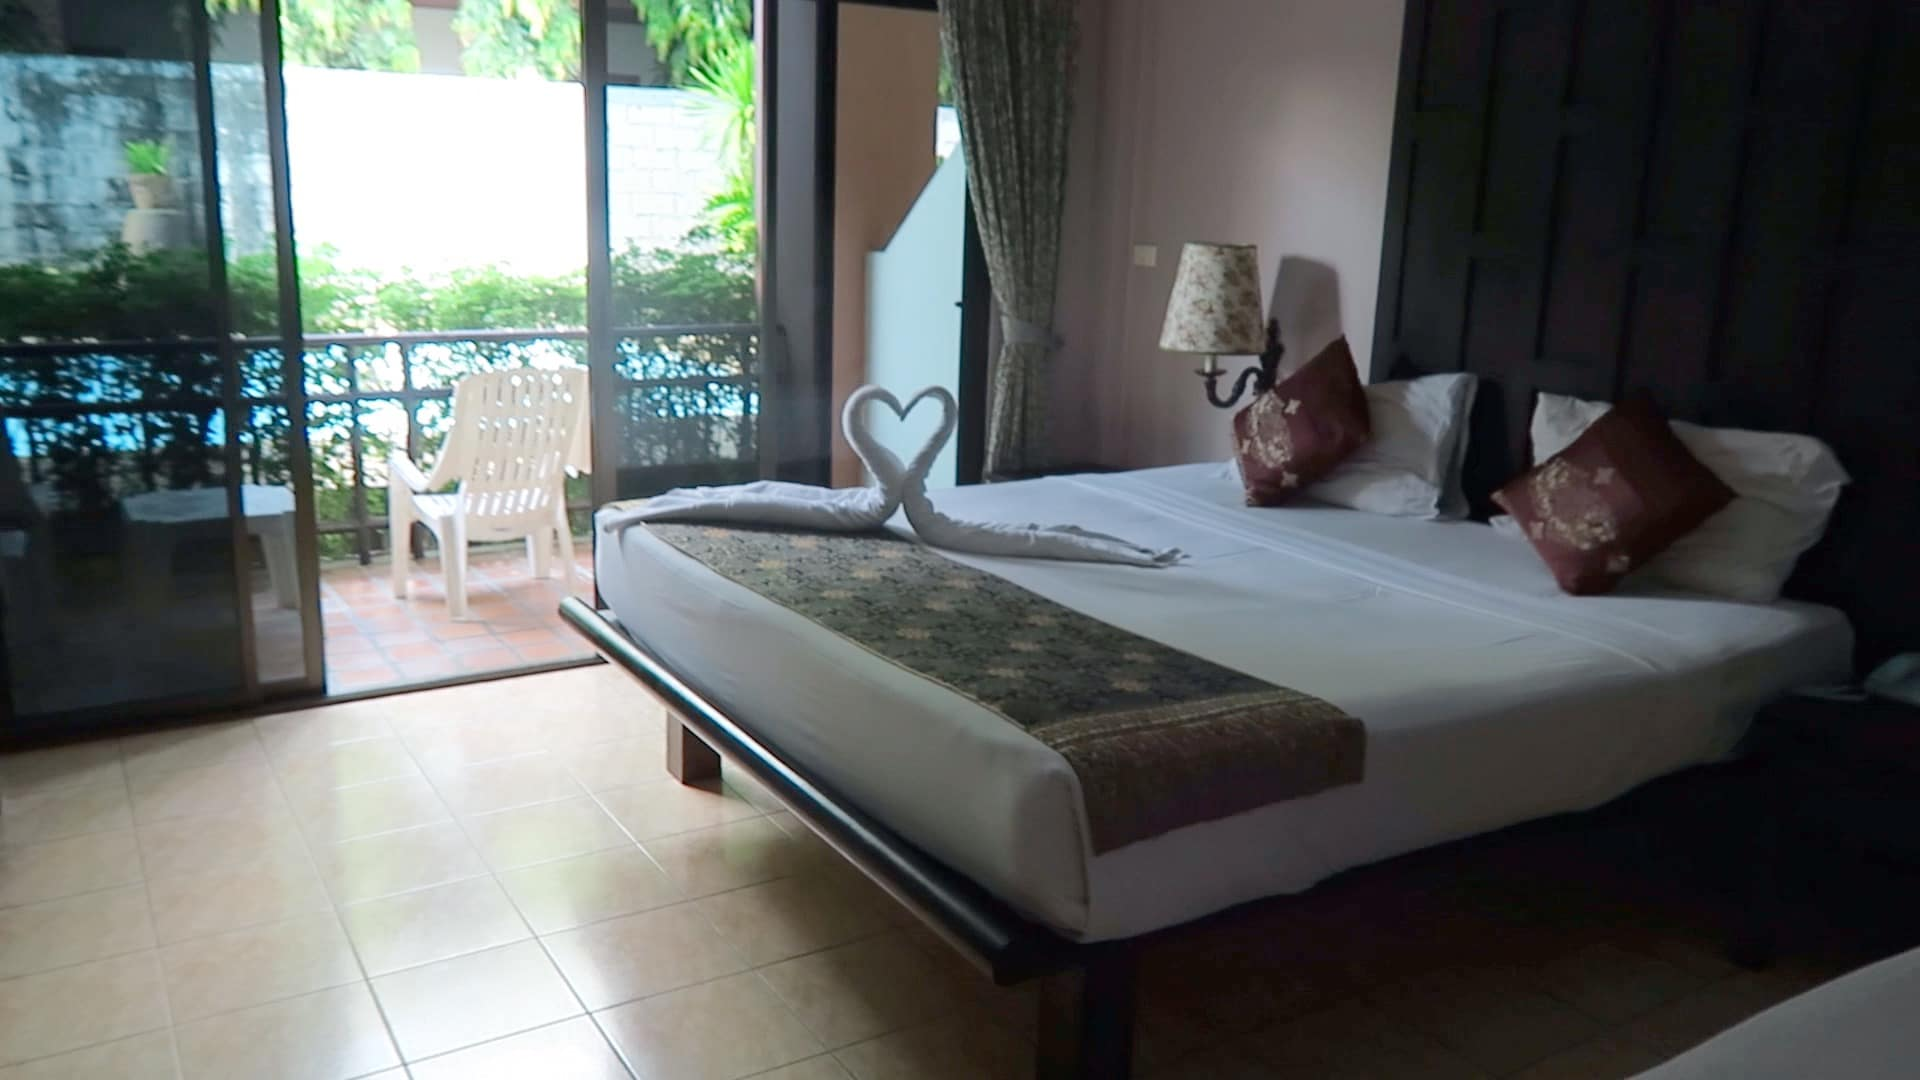 Our room at the First Resort in Patong Beach